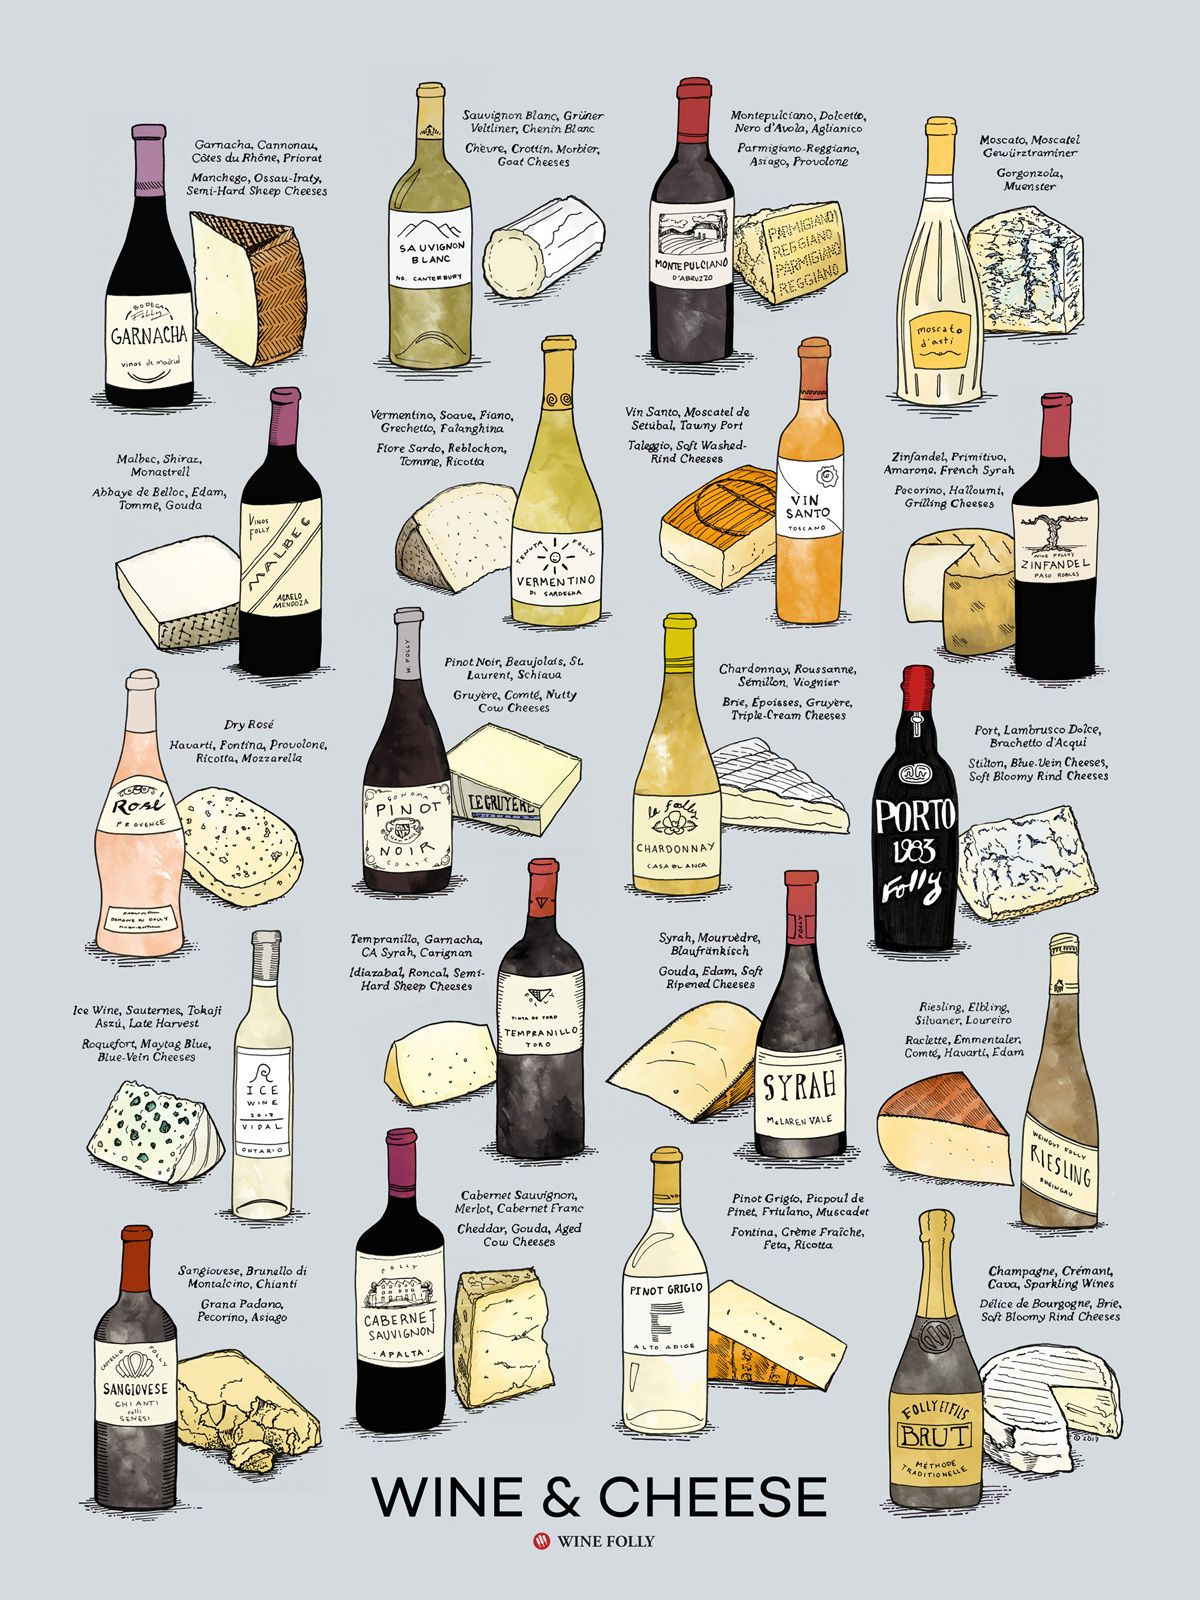 6 Tips on Pairing Wine and Cheese.